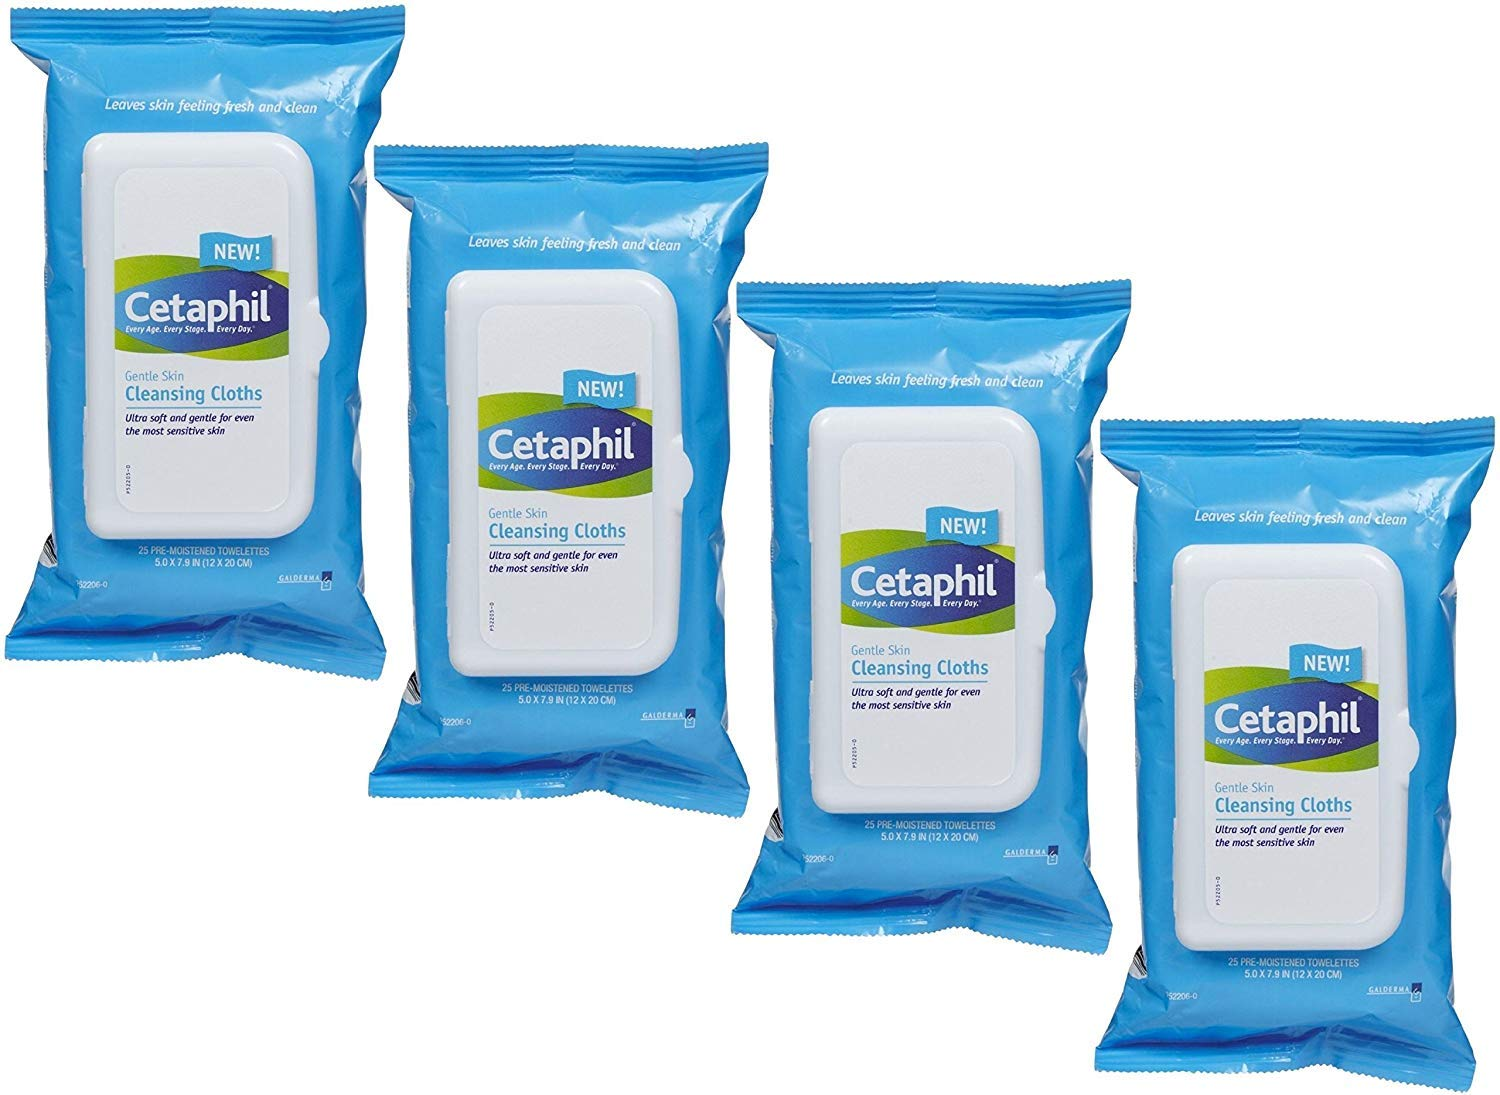 Cetaphil Gentle Skin Cleansing Cloths, 100 Count (4 X 25 Count Packs)